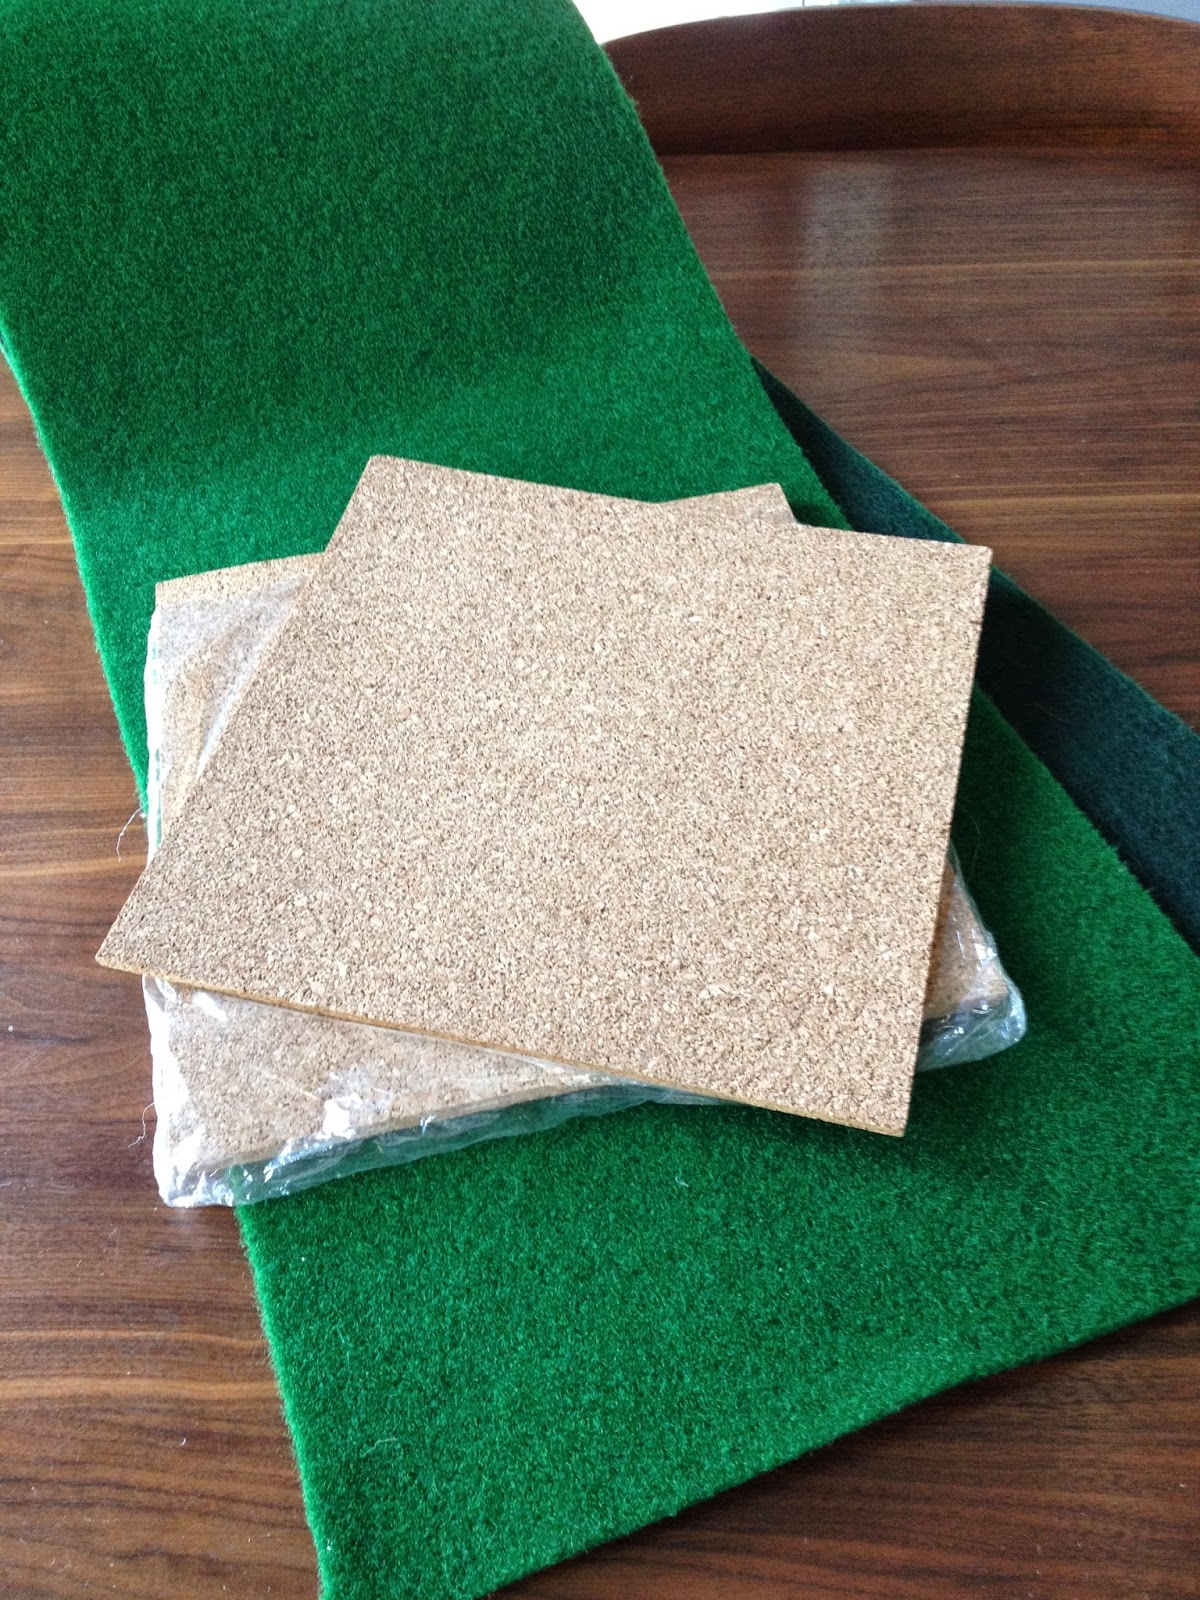 Embarrassingly easy DIY cork board project. - Flipping the Flip